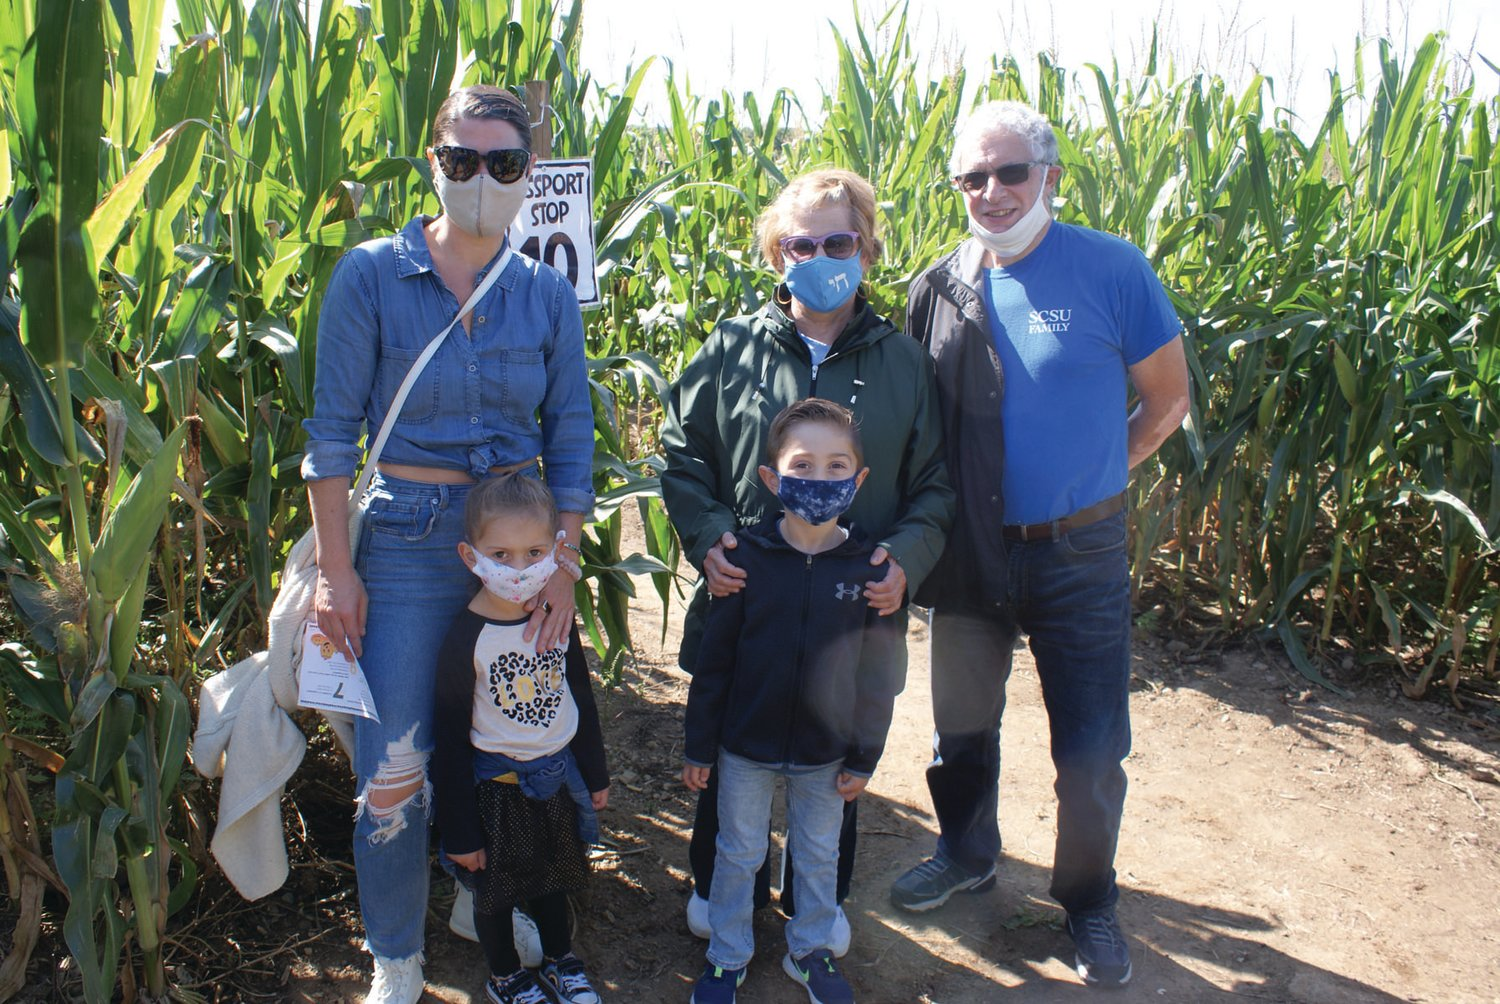 ALL IN THE FAMILY: Members of the Salinger family enjoyed fall activities at Confreda Farms over the weekend. Here, they are pictured,